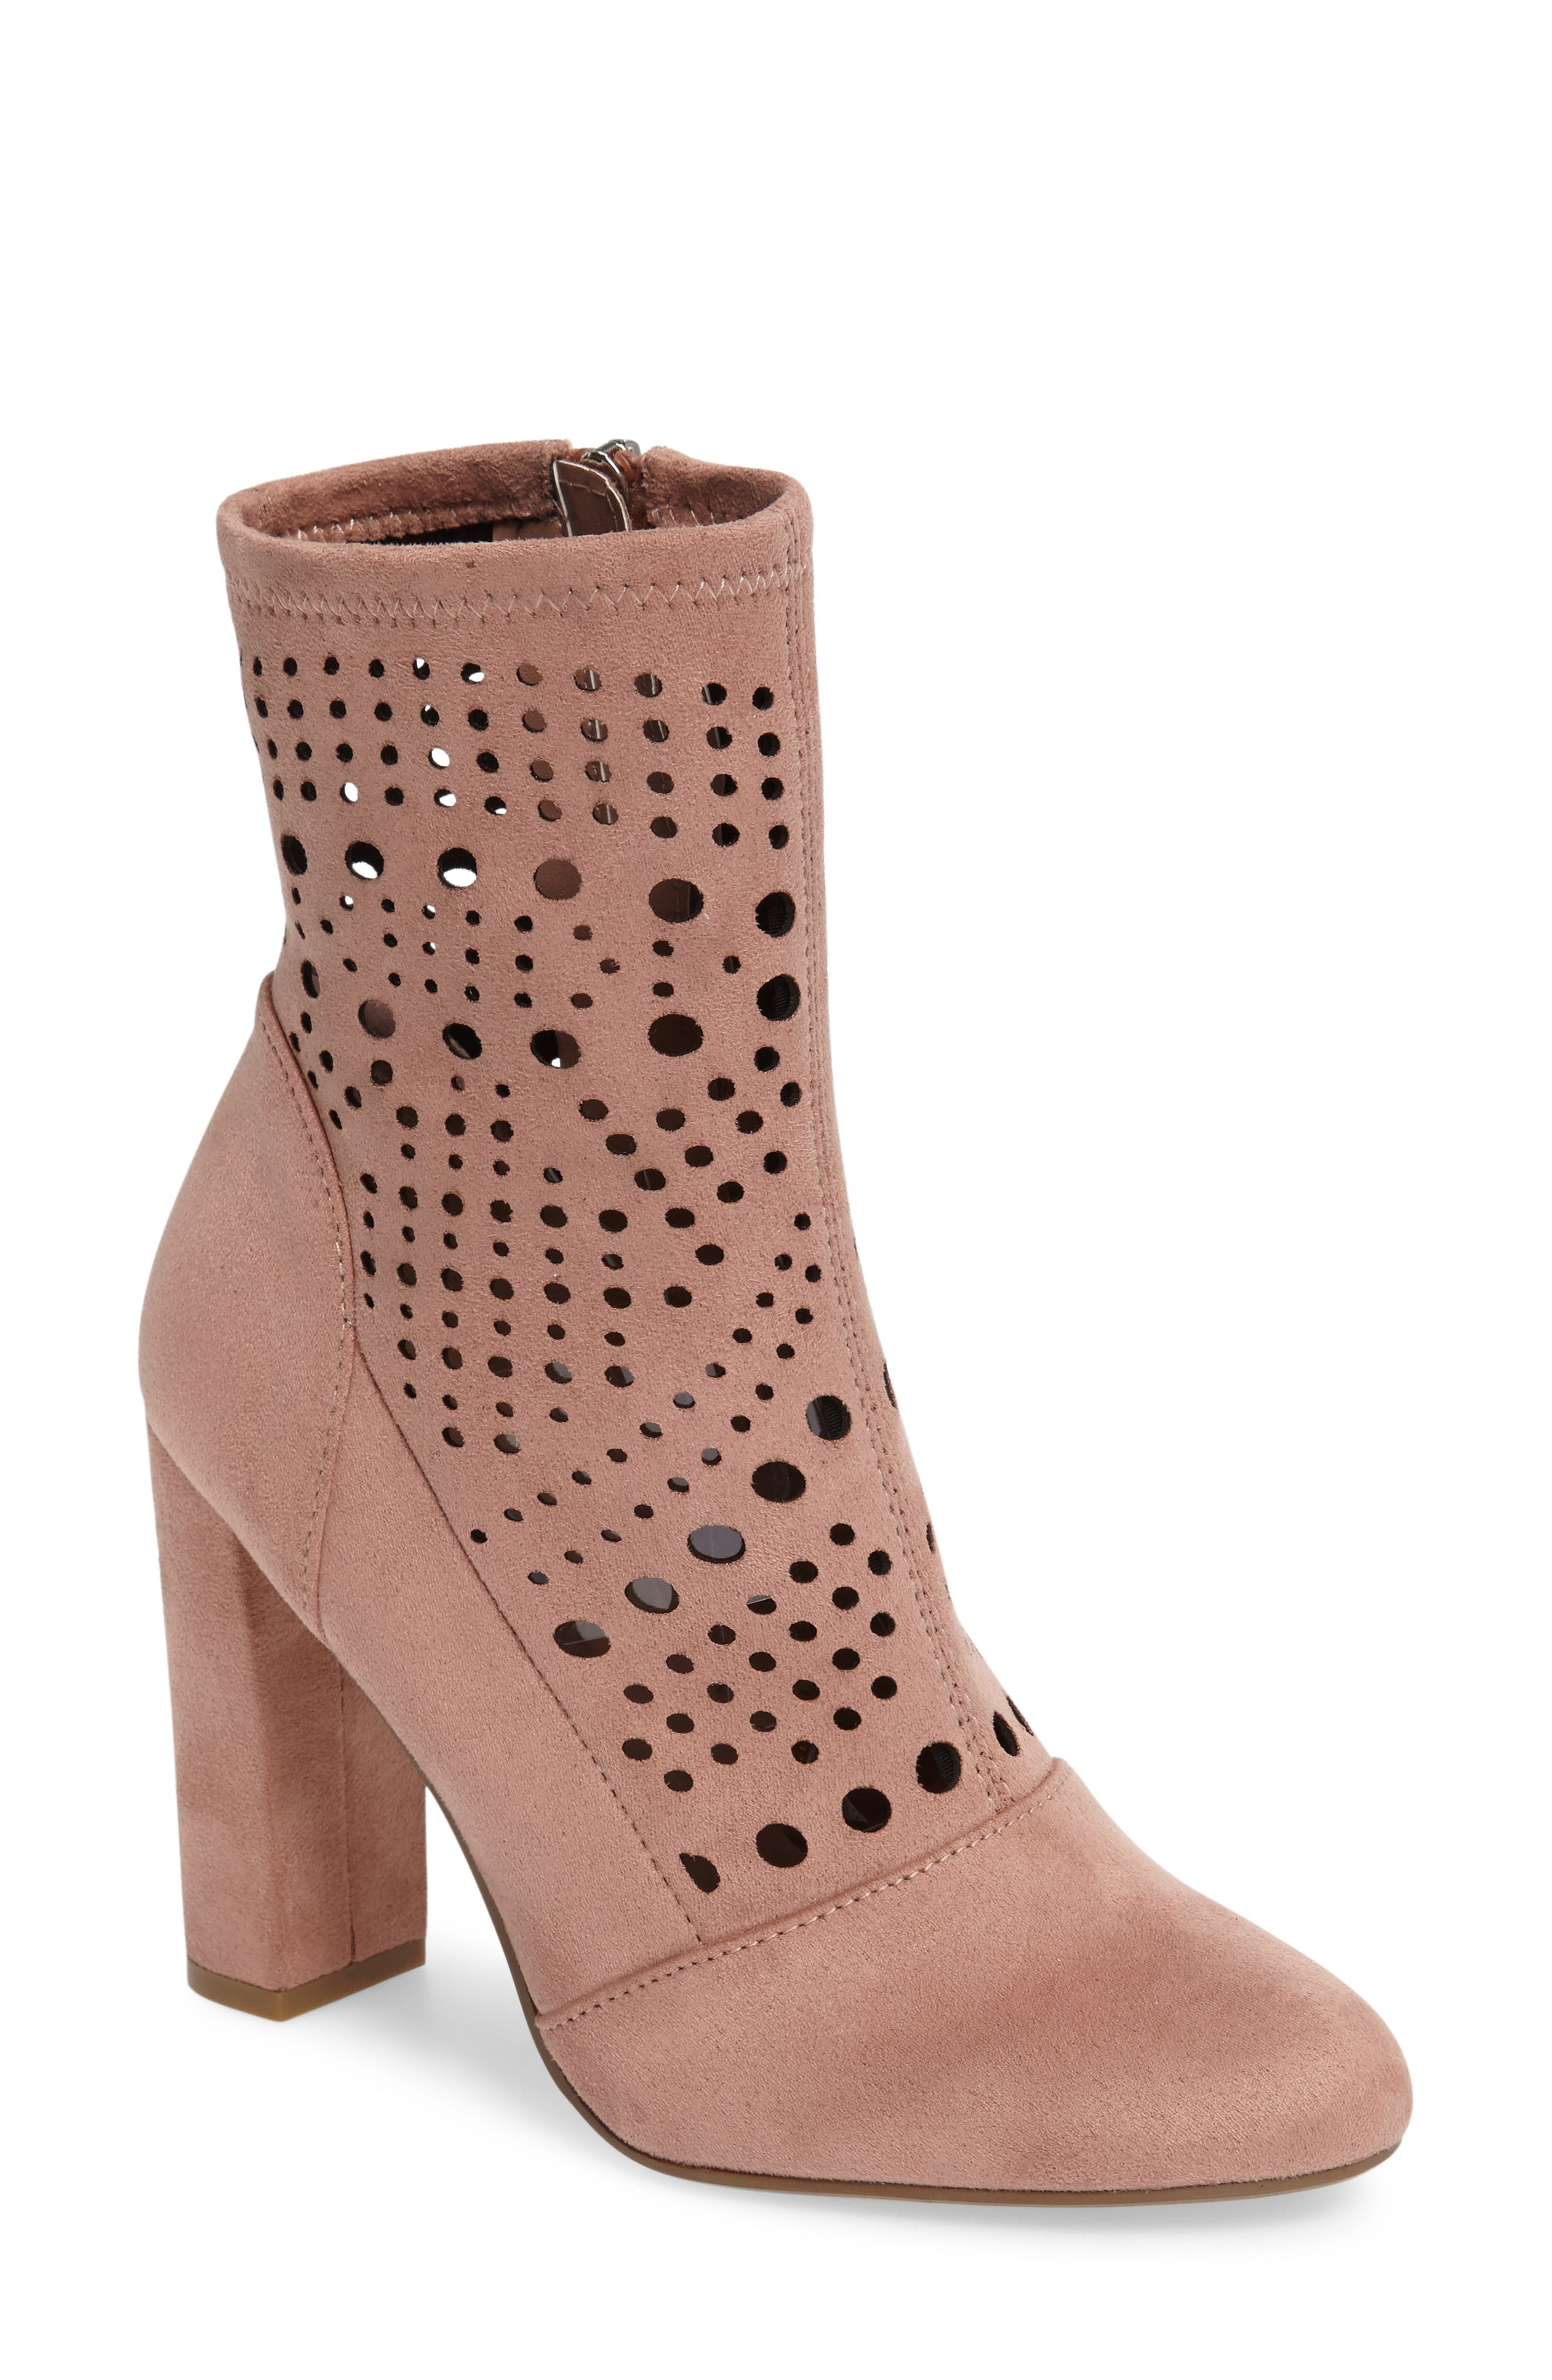 Alternate Image 1 Selected - Steve Madden Ennie Perforated Bootie (Women)